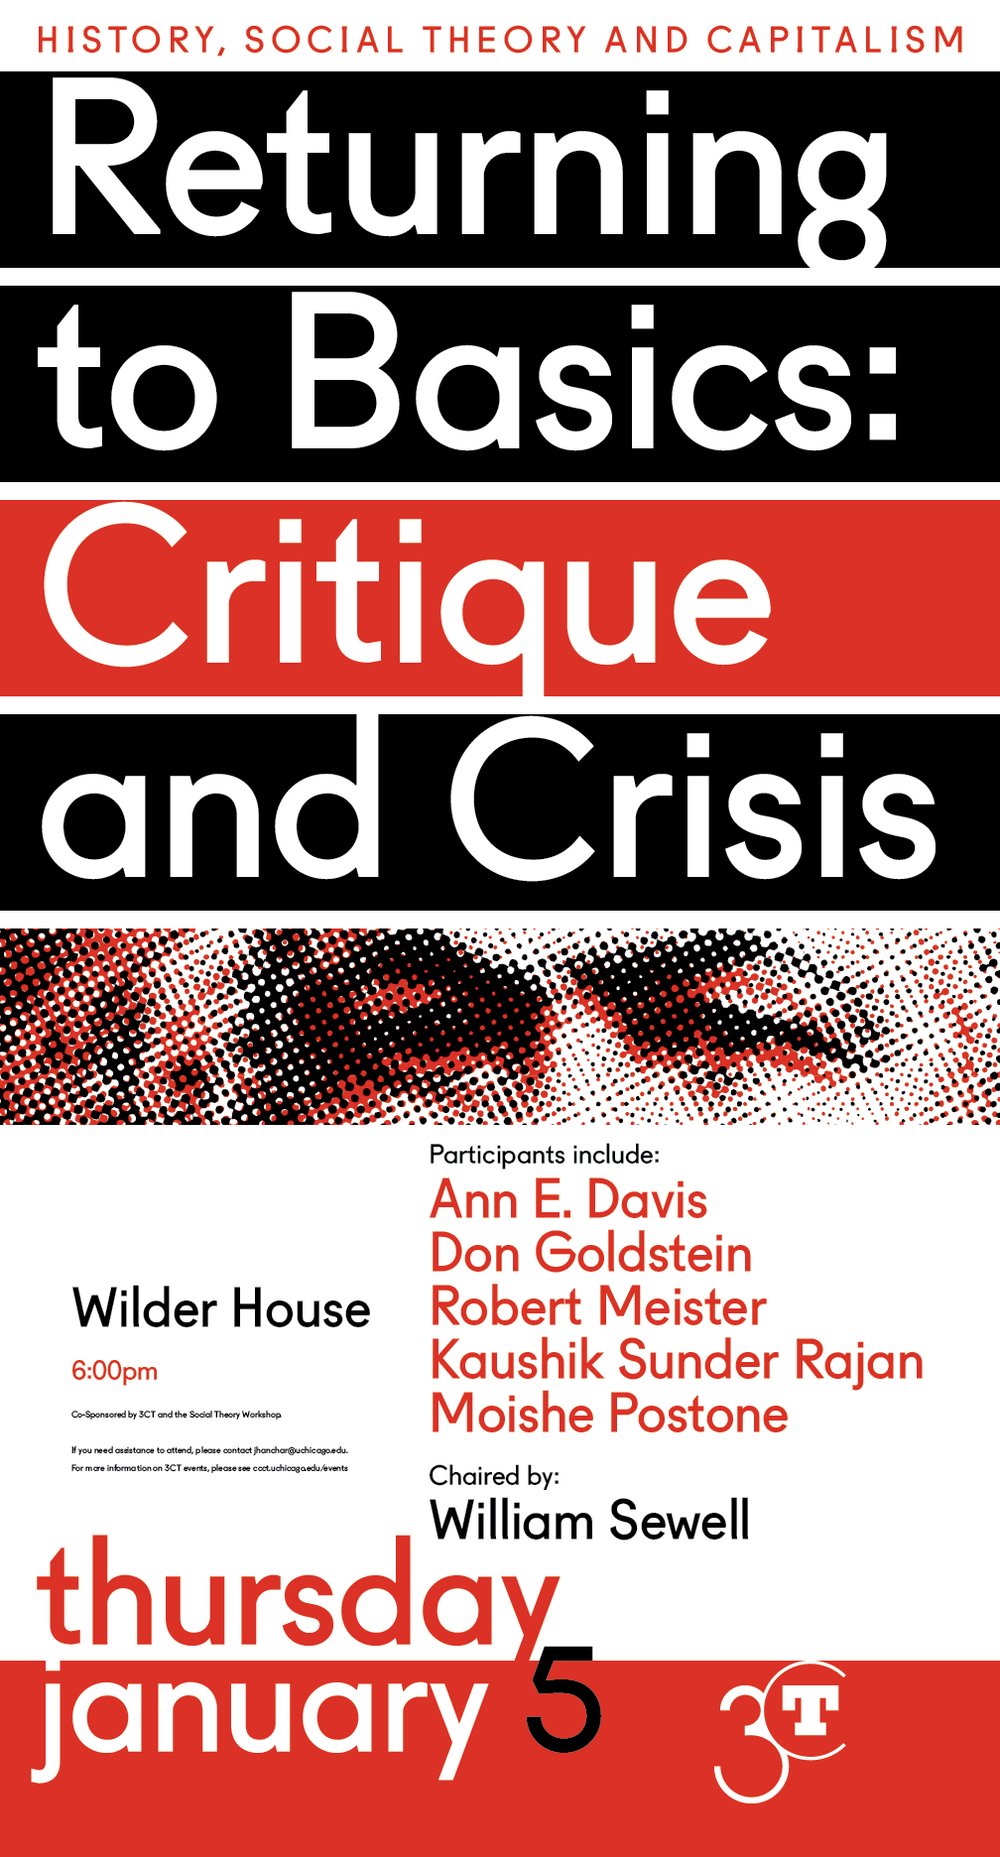 Poster for January 2017 Returning to Basics: Critique and Crisis discussion